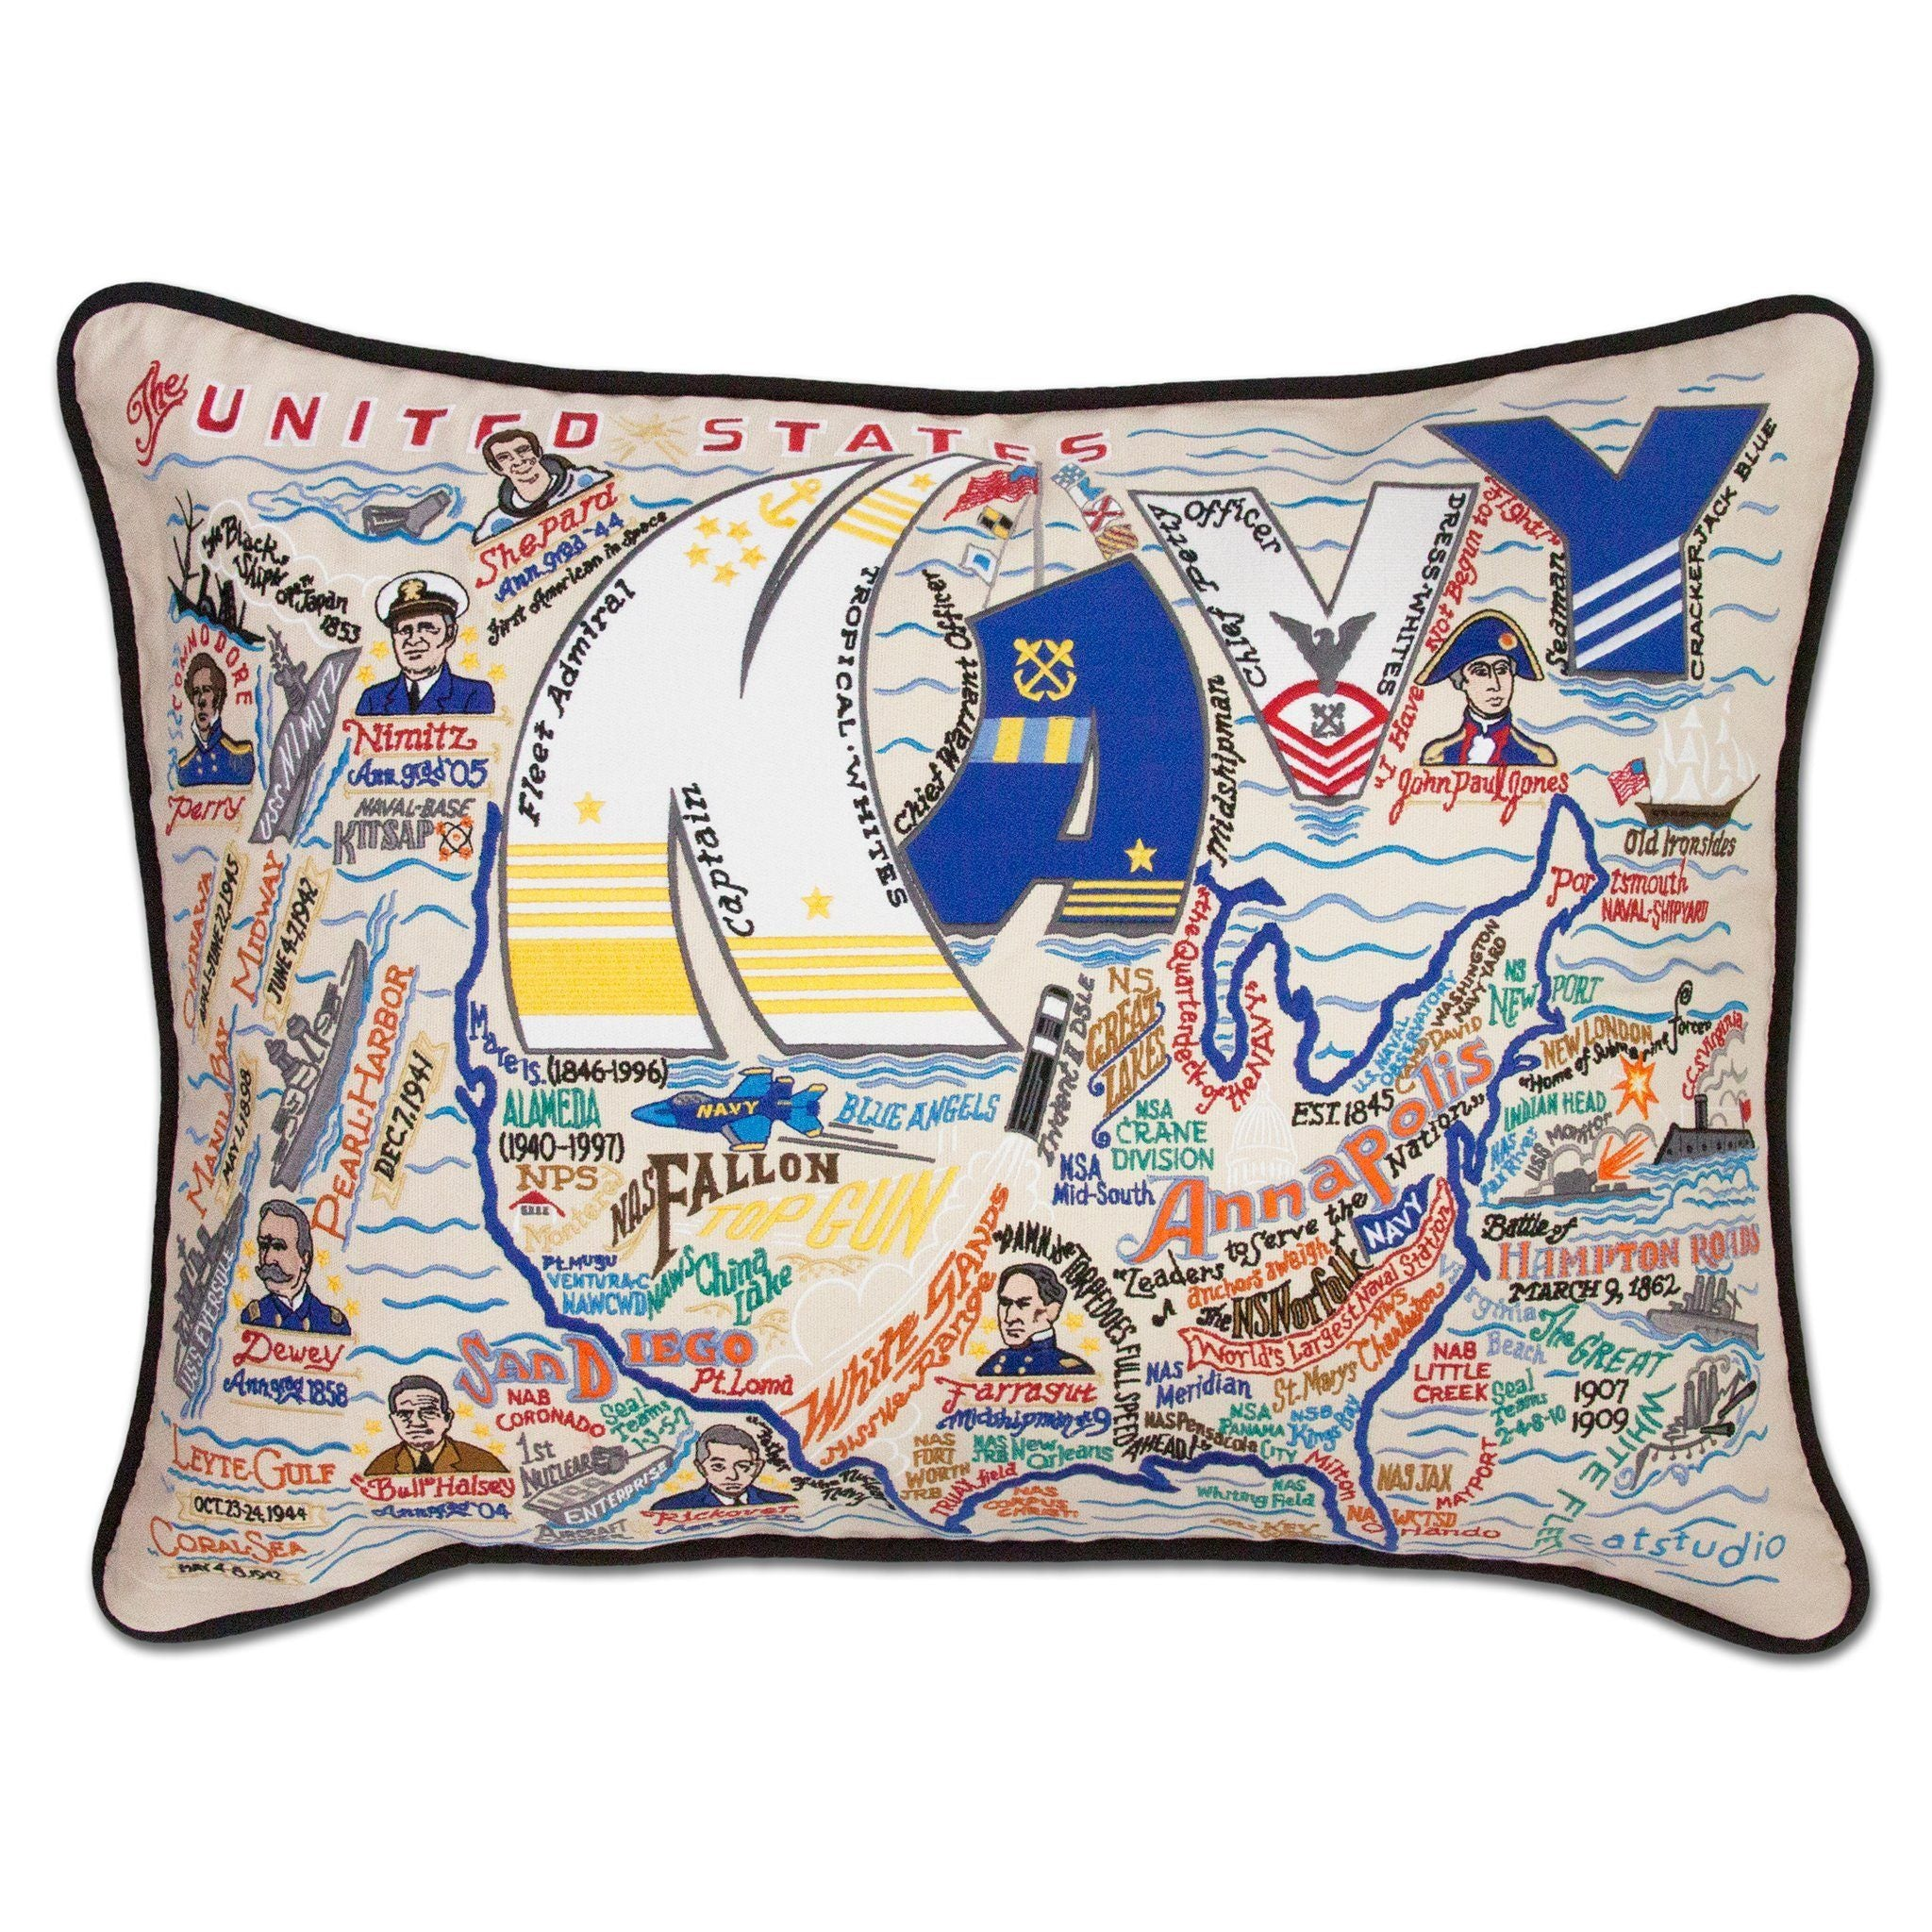 Cat Studio Navy Embroidered Pillow